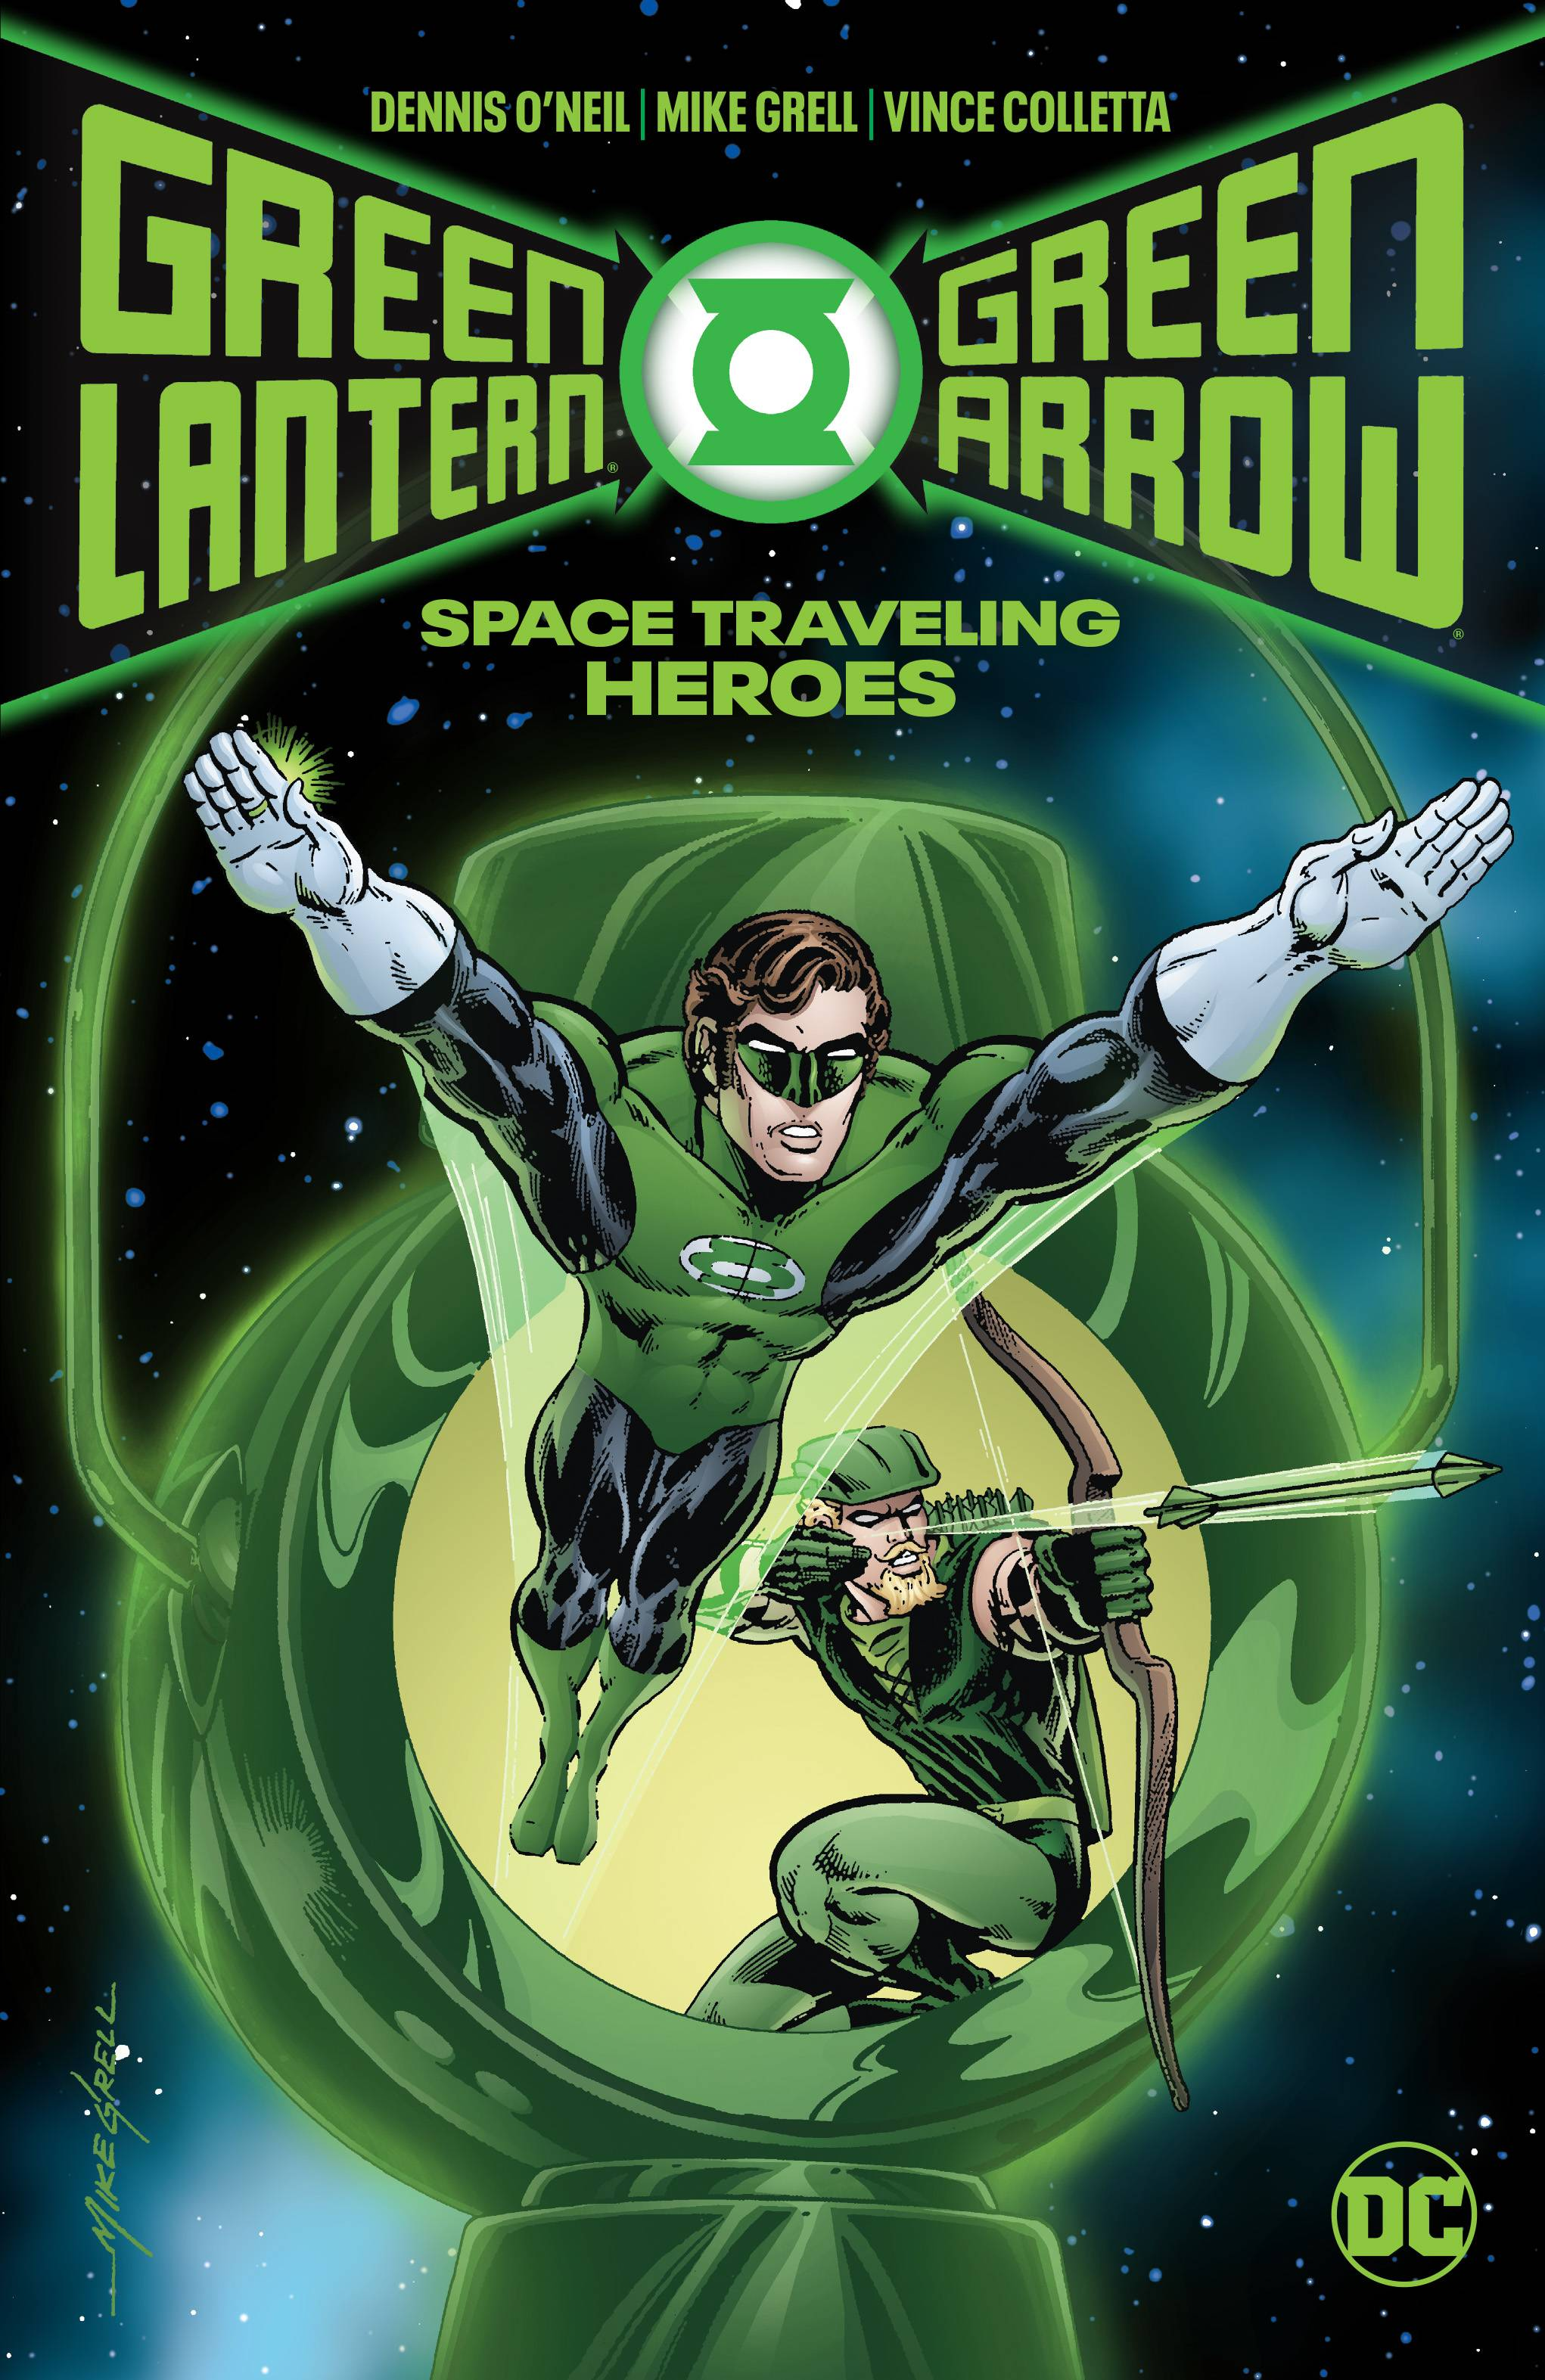 GREEN LANTERN GREEN ARROW SPACE TRAVELING HEROES HC (RES)